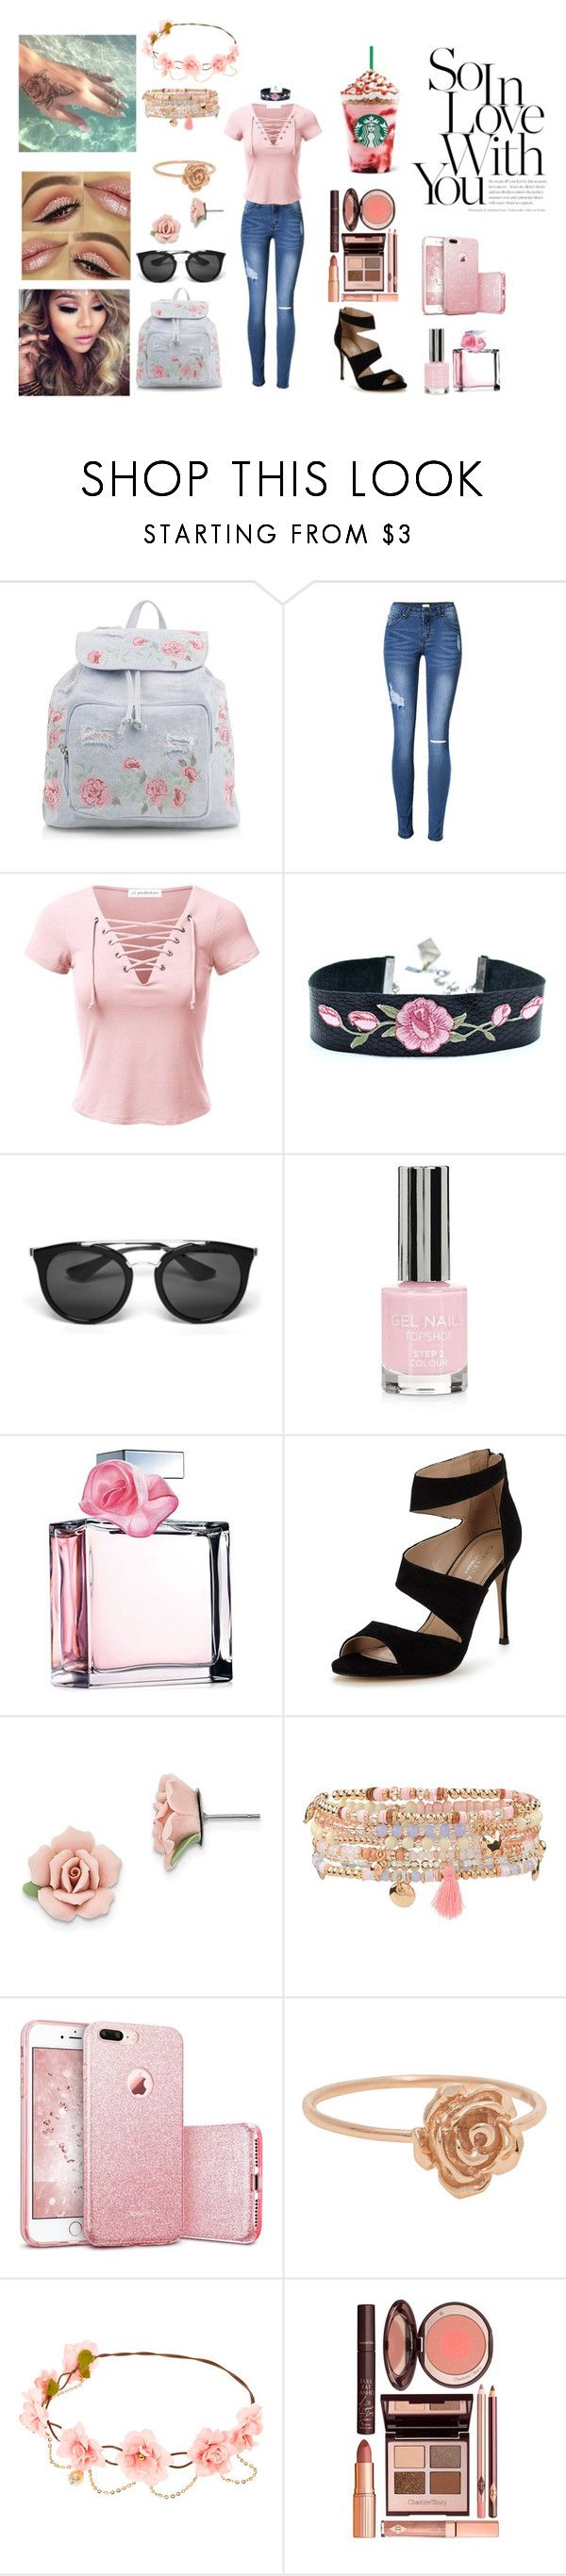 """Street beauty #10"" by streetbeautyforever ❤ liked on Polyvore featuring New Look, Prada, Topshop, Ralph Lauren, Carvela, 1928, Accessorize and Charlotte Tilbury"